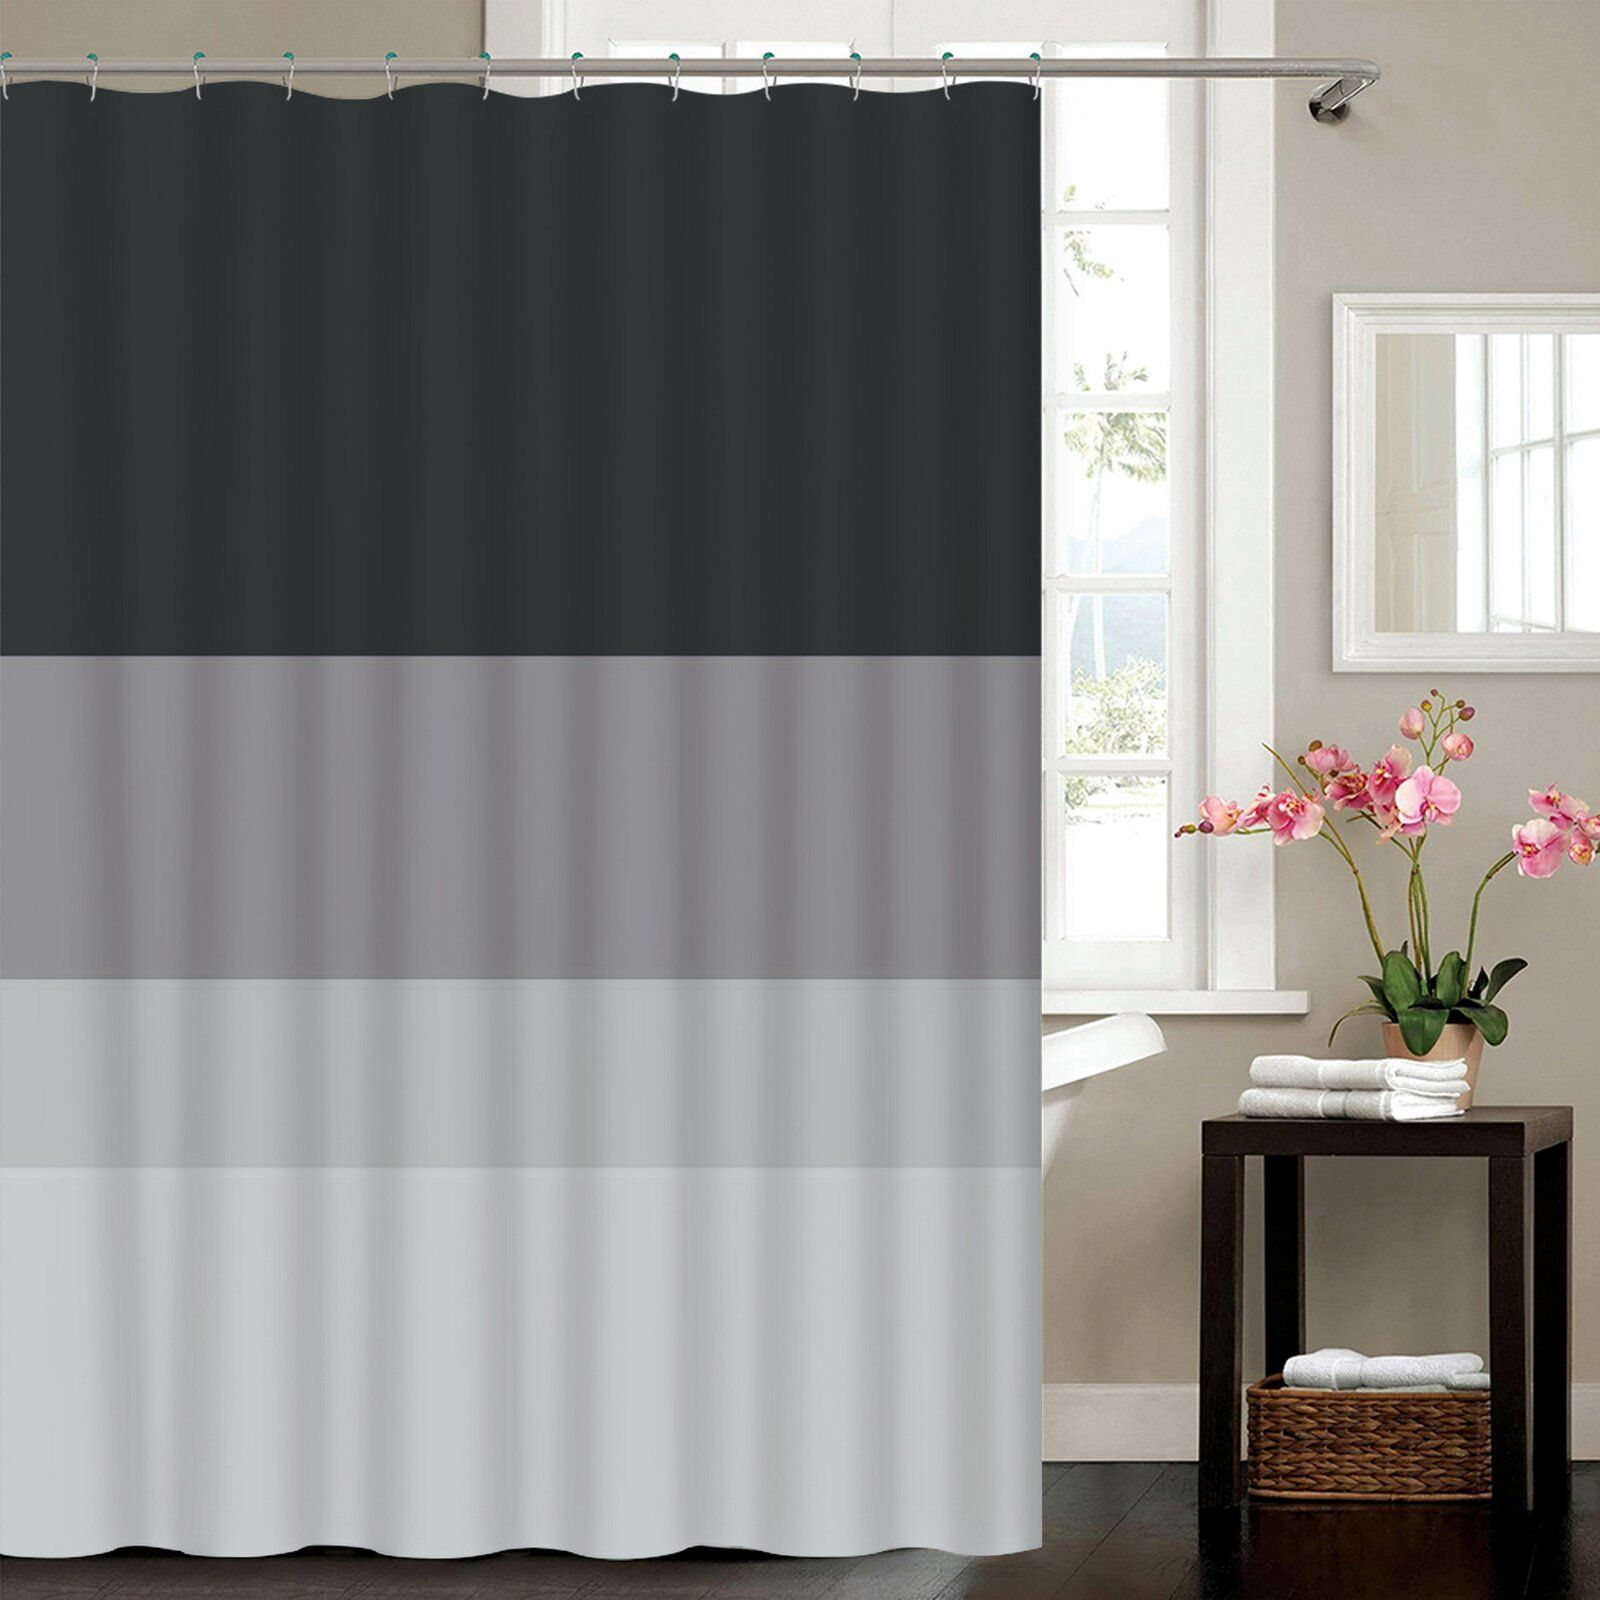 Milam Shower Curtain In 2020 Curtains Curtain Styles Decor